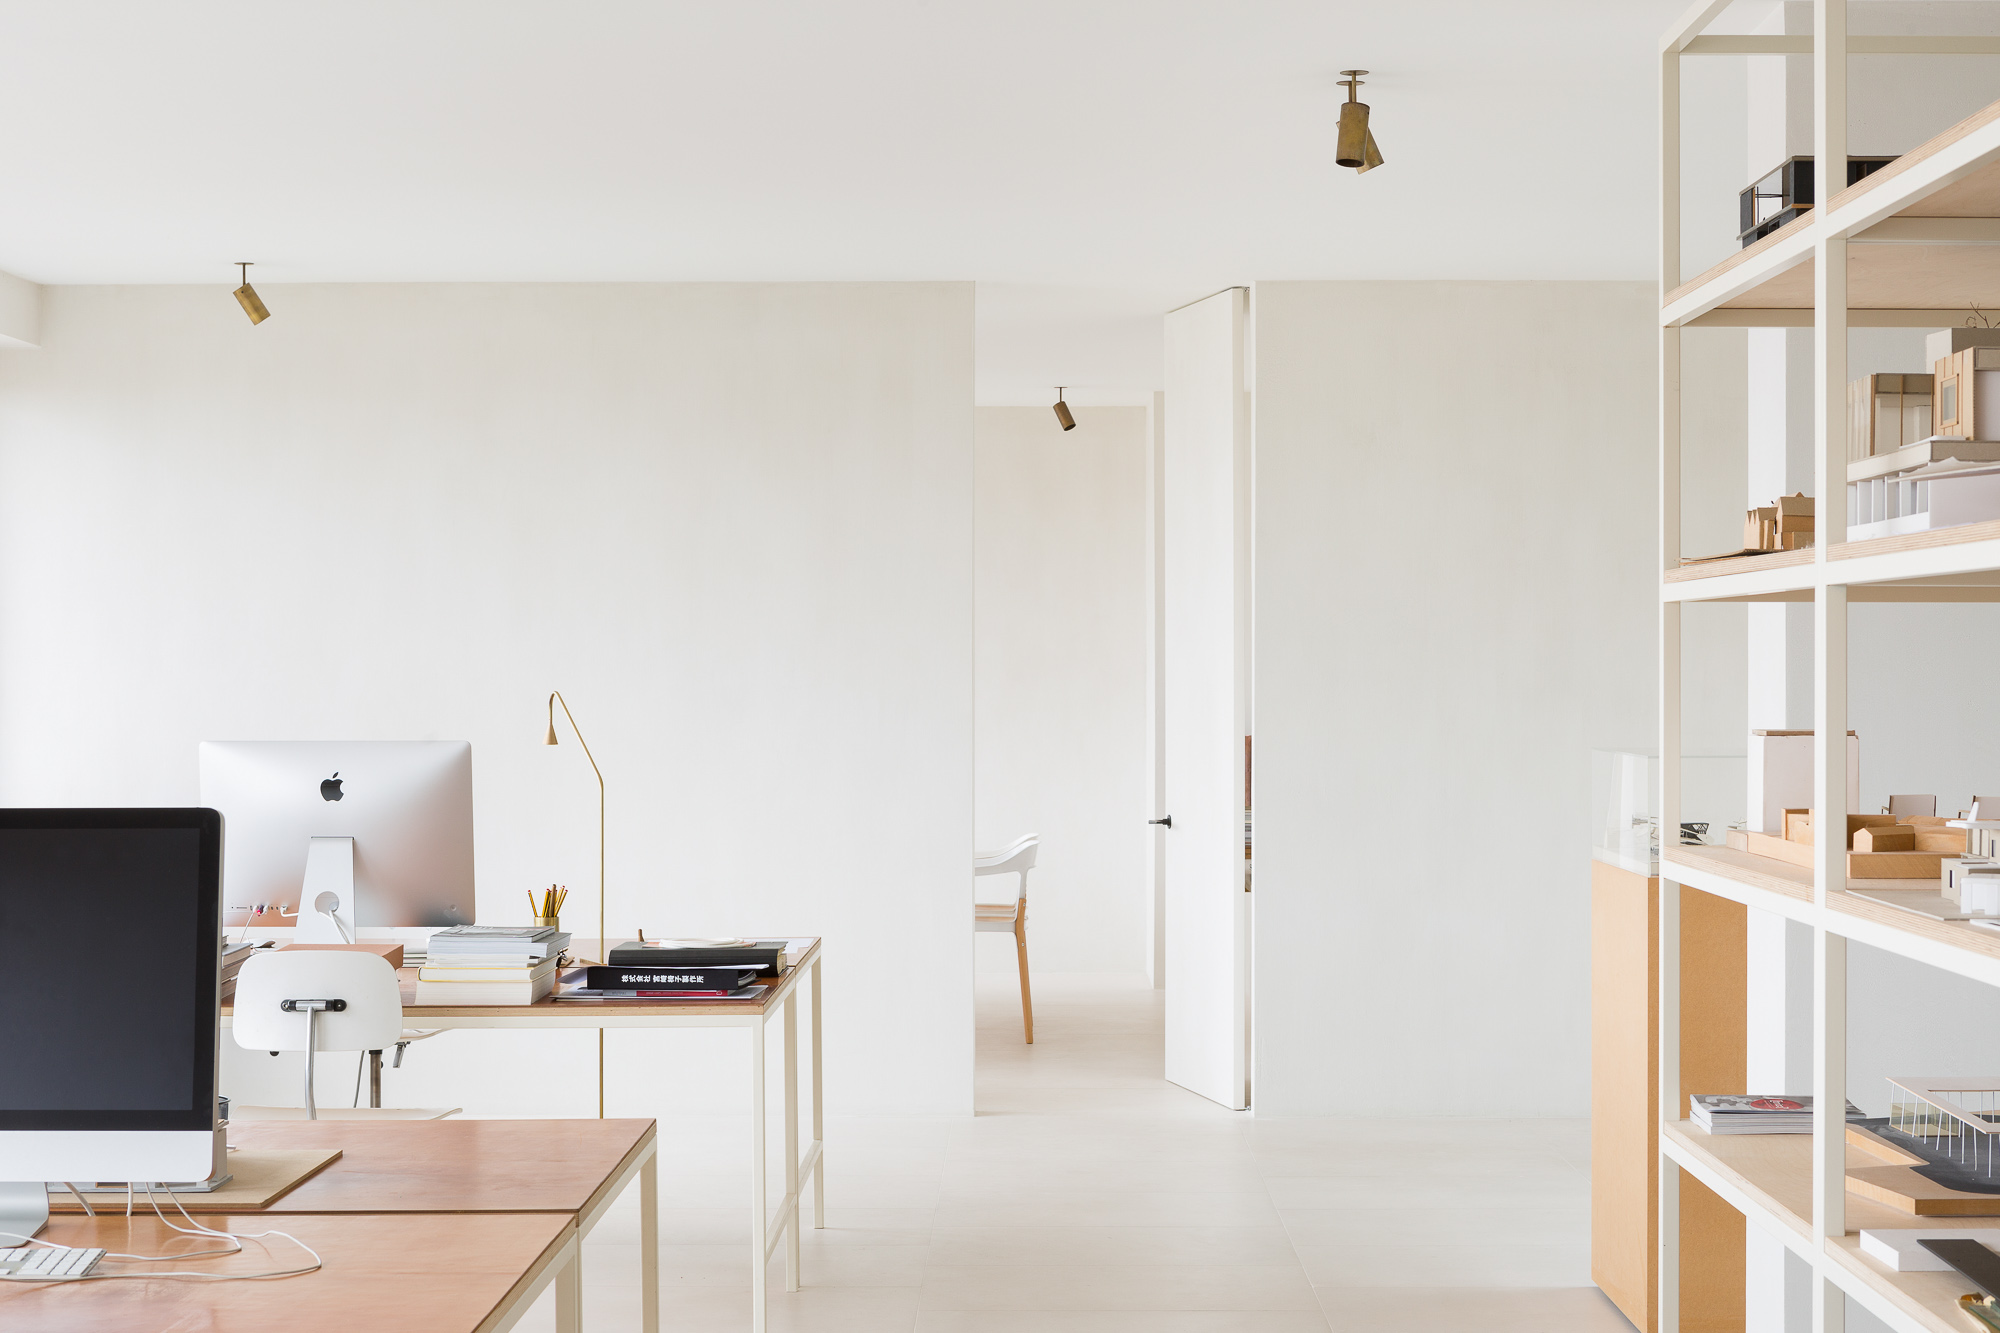 Hans Verstuyft, Frederik Vercruysse, residence, office, interiors, home, inspiration, oracle fox